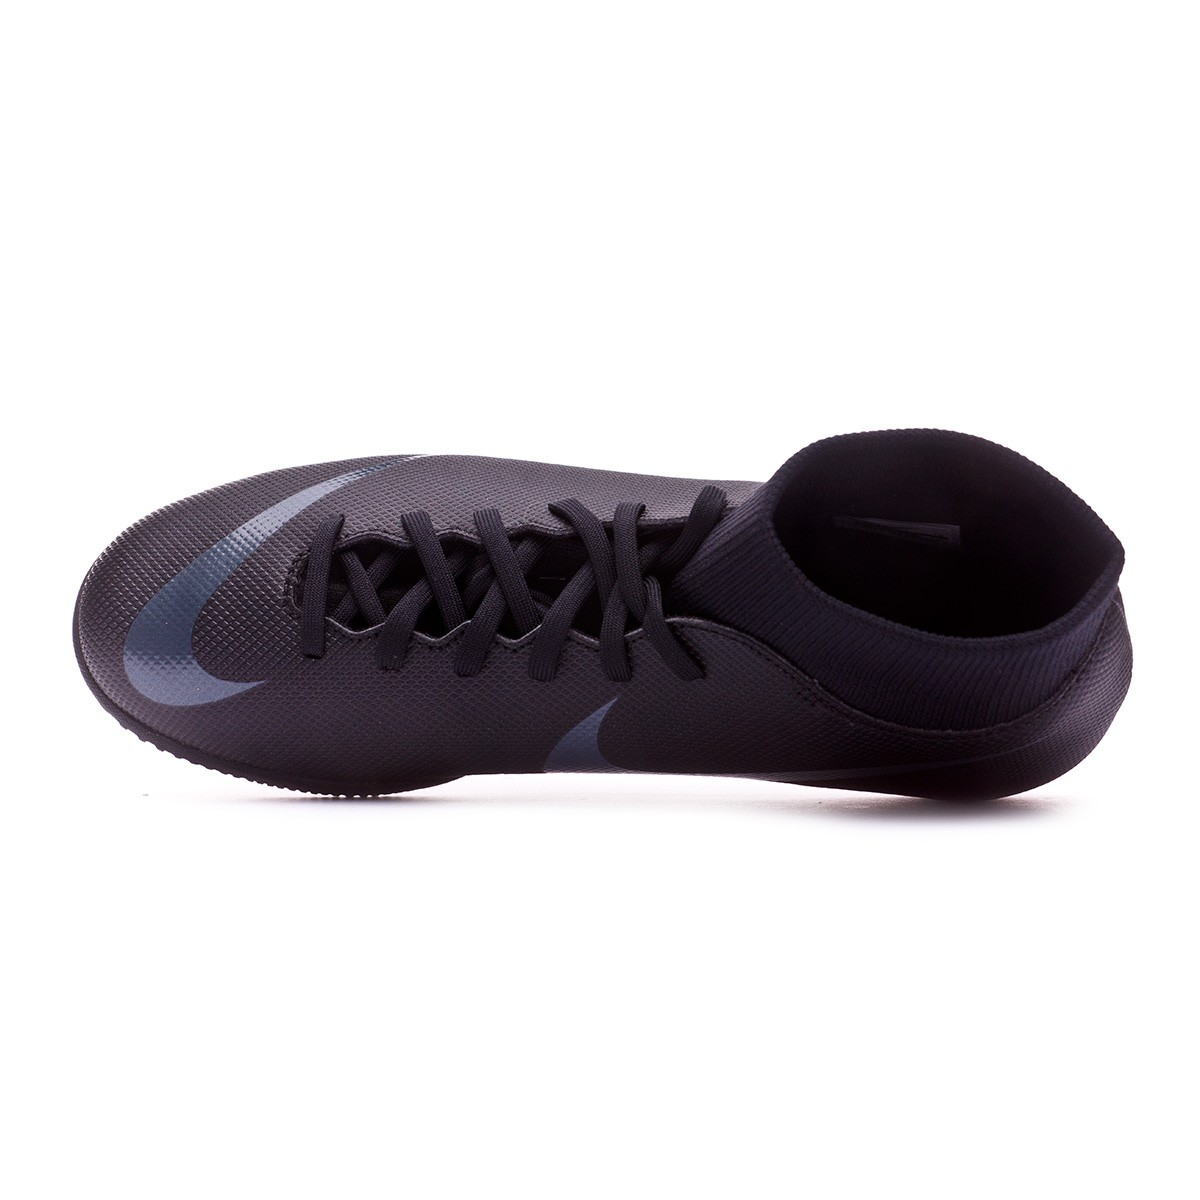 083ee523c20 Futsal Boot Nike Mercurial Superfly VI Club IC Black - Football store  Fútbol Emotion